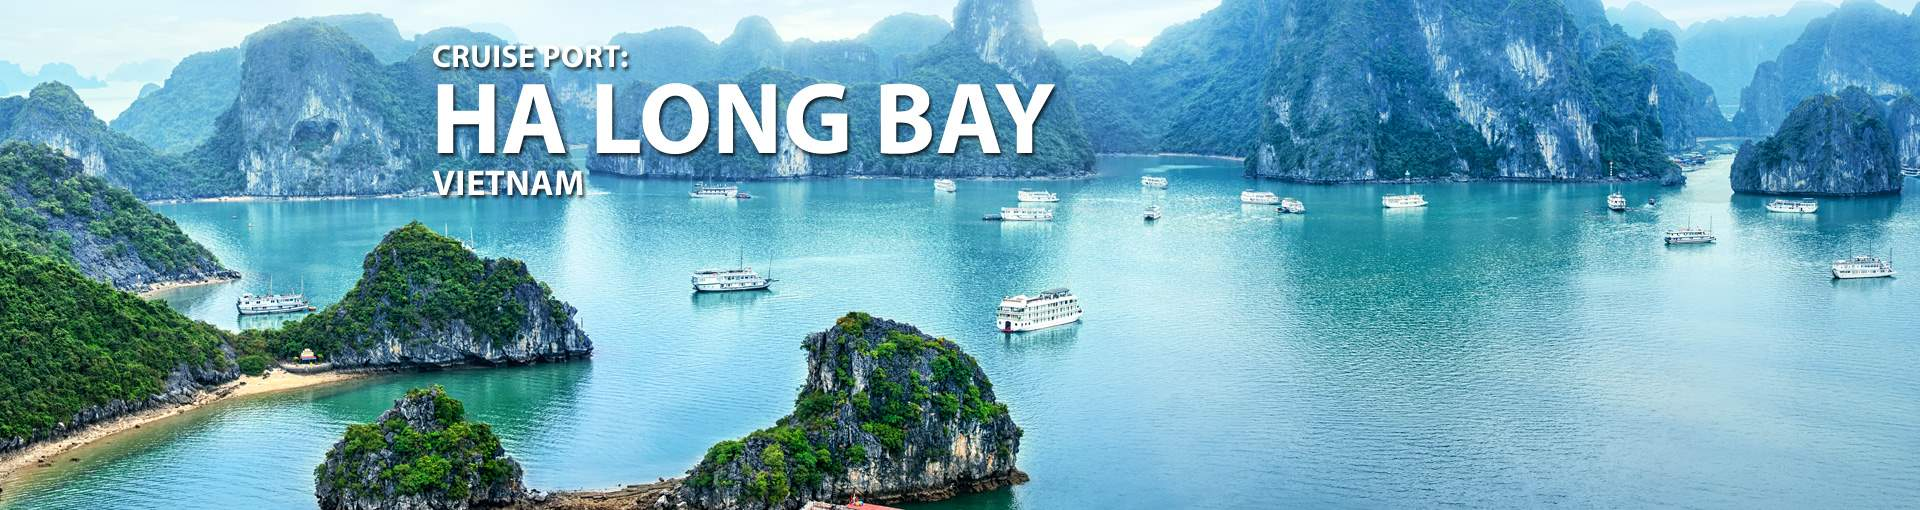 Cruises to Ha Long Bay, Vietnam